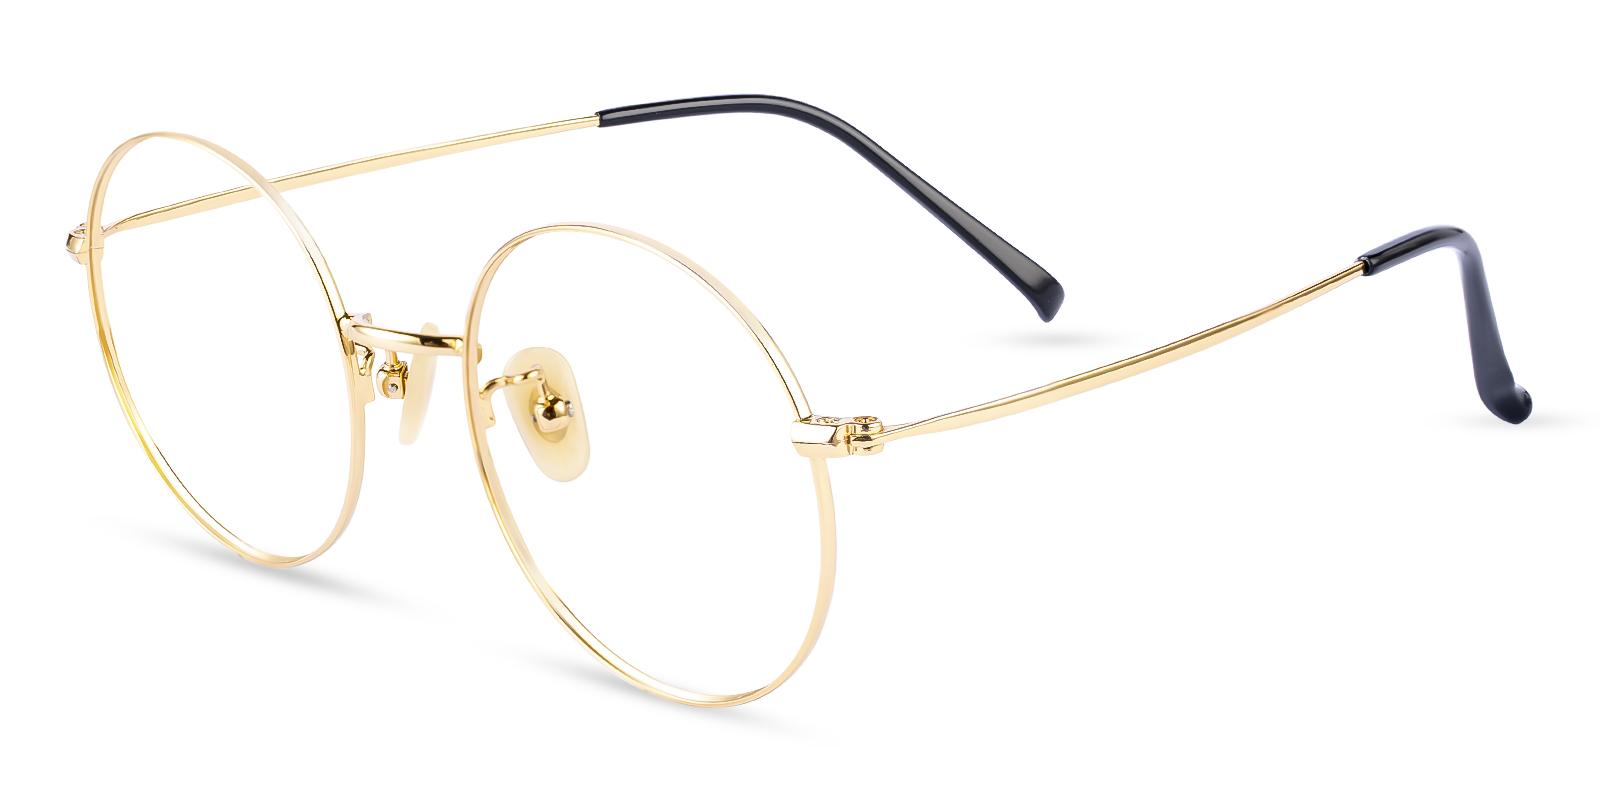 Zoe Gold Titanium NosePads , Eyeglasses , Lightweight Frames from ABBE Glasses